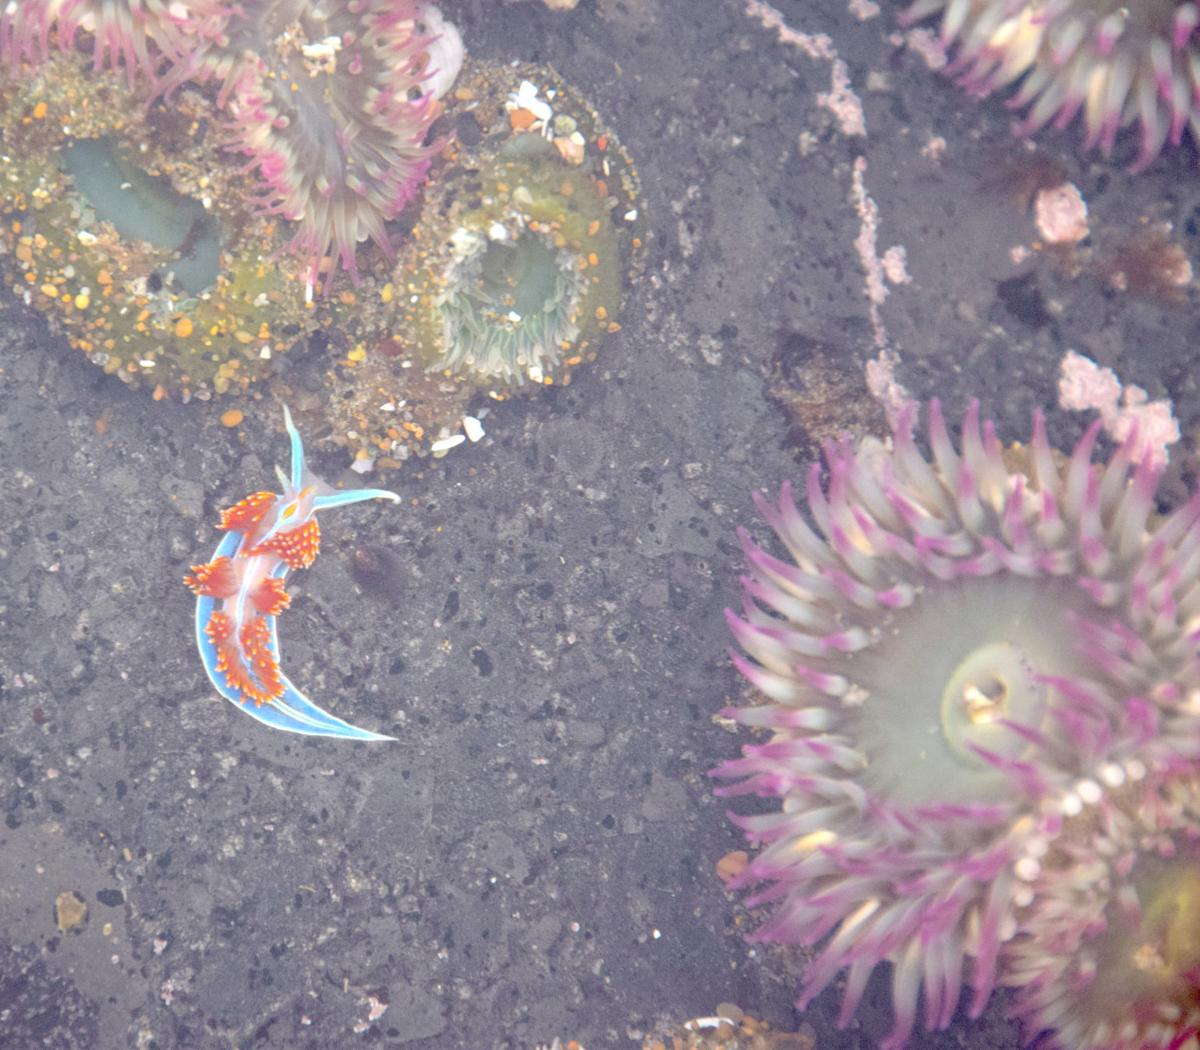 191011_oct_Tide poooling trips offer the chance of amazing discoveries.jpg